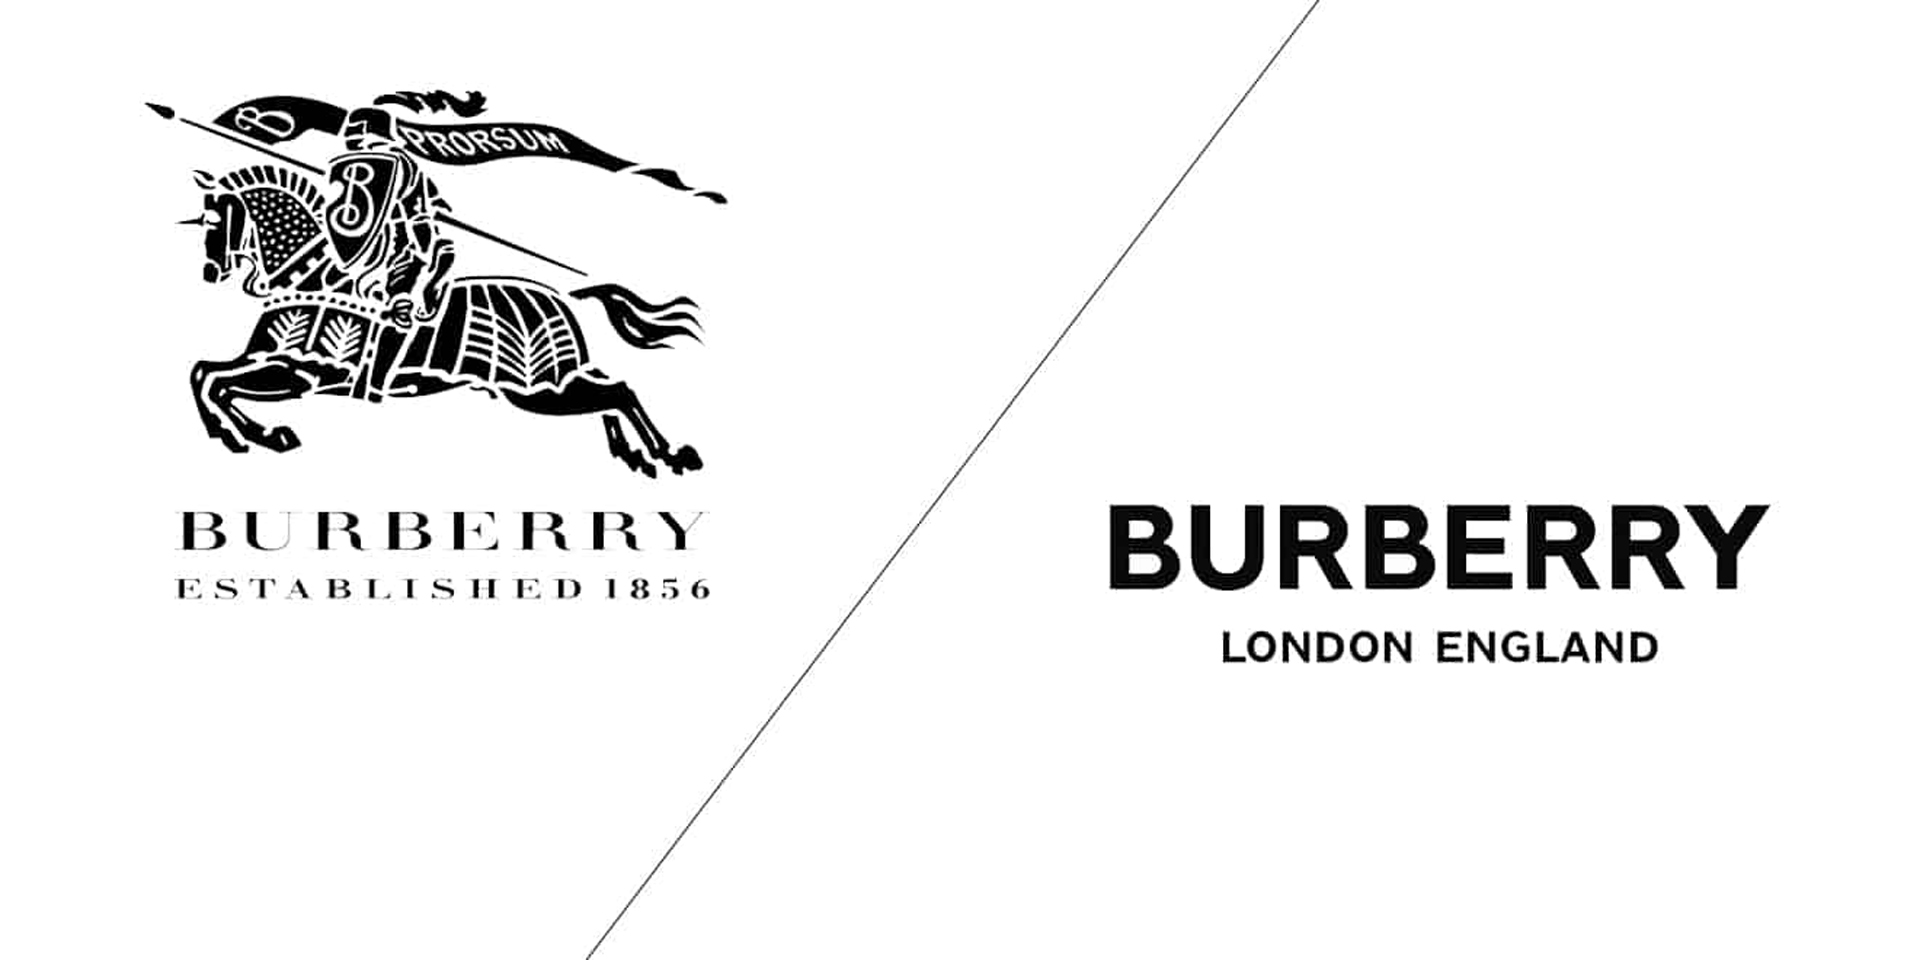 Burberry's New Brand Identity